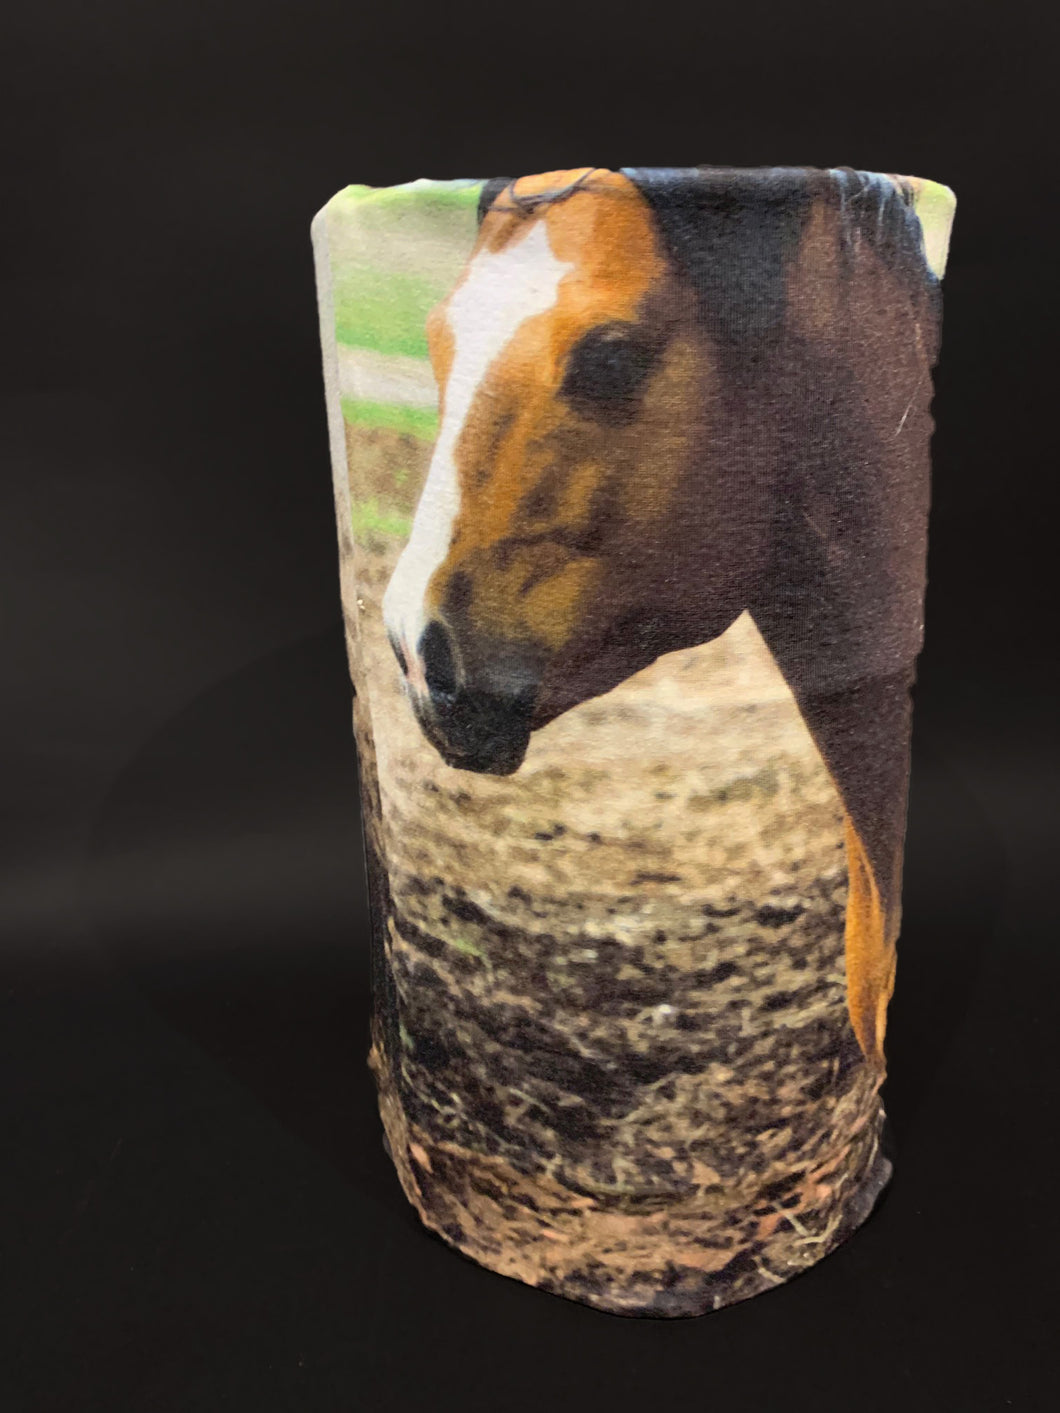 Foulards Tubulaires Cheval a la course FT-012